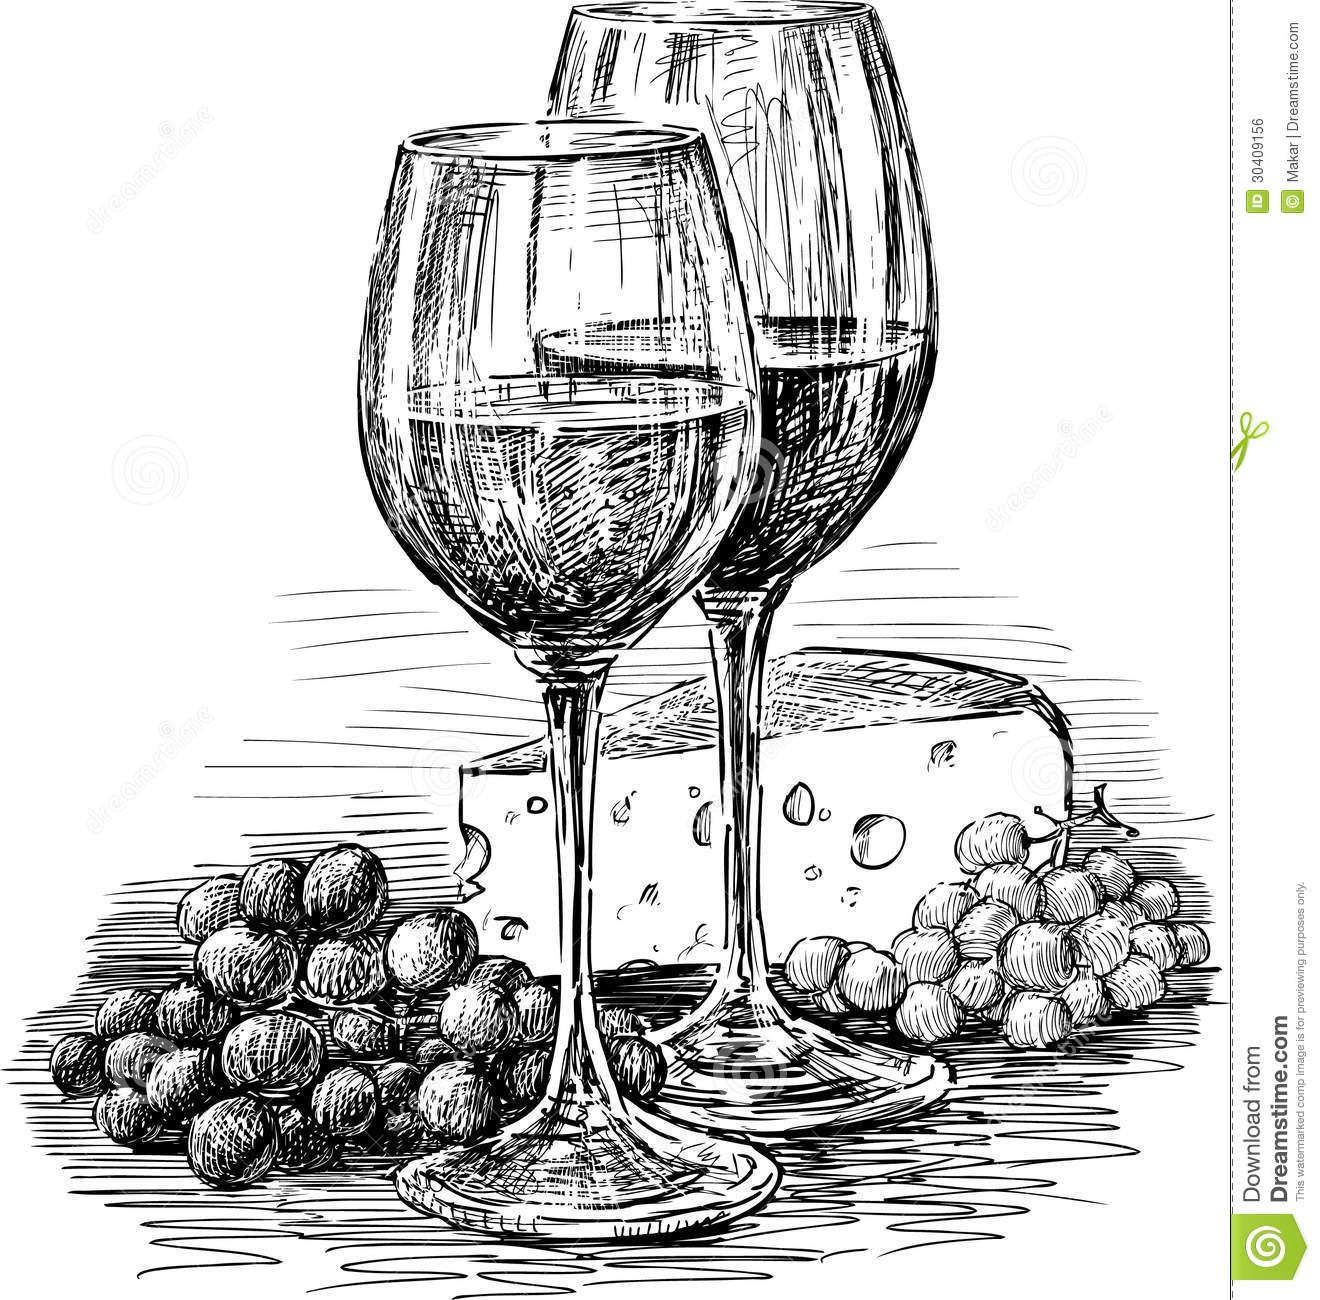 Wine and glasses stock. Cheese clipart drawing